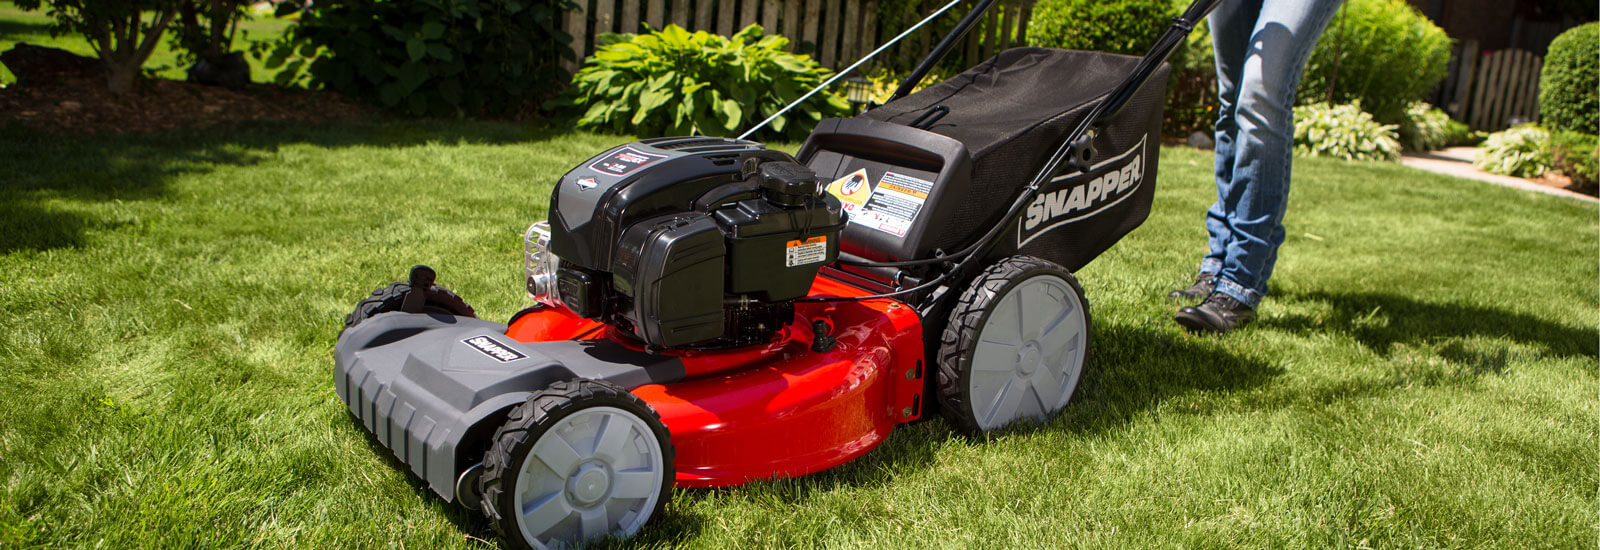 What is the Best Type of Push Lawn Mower?